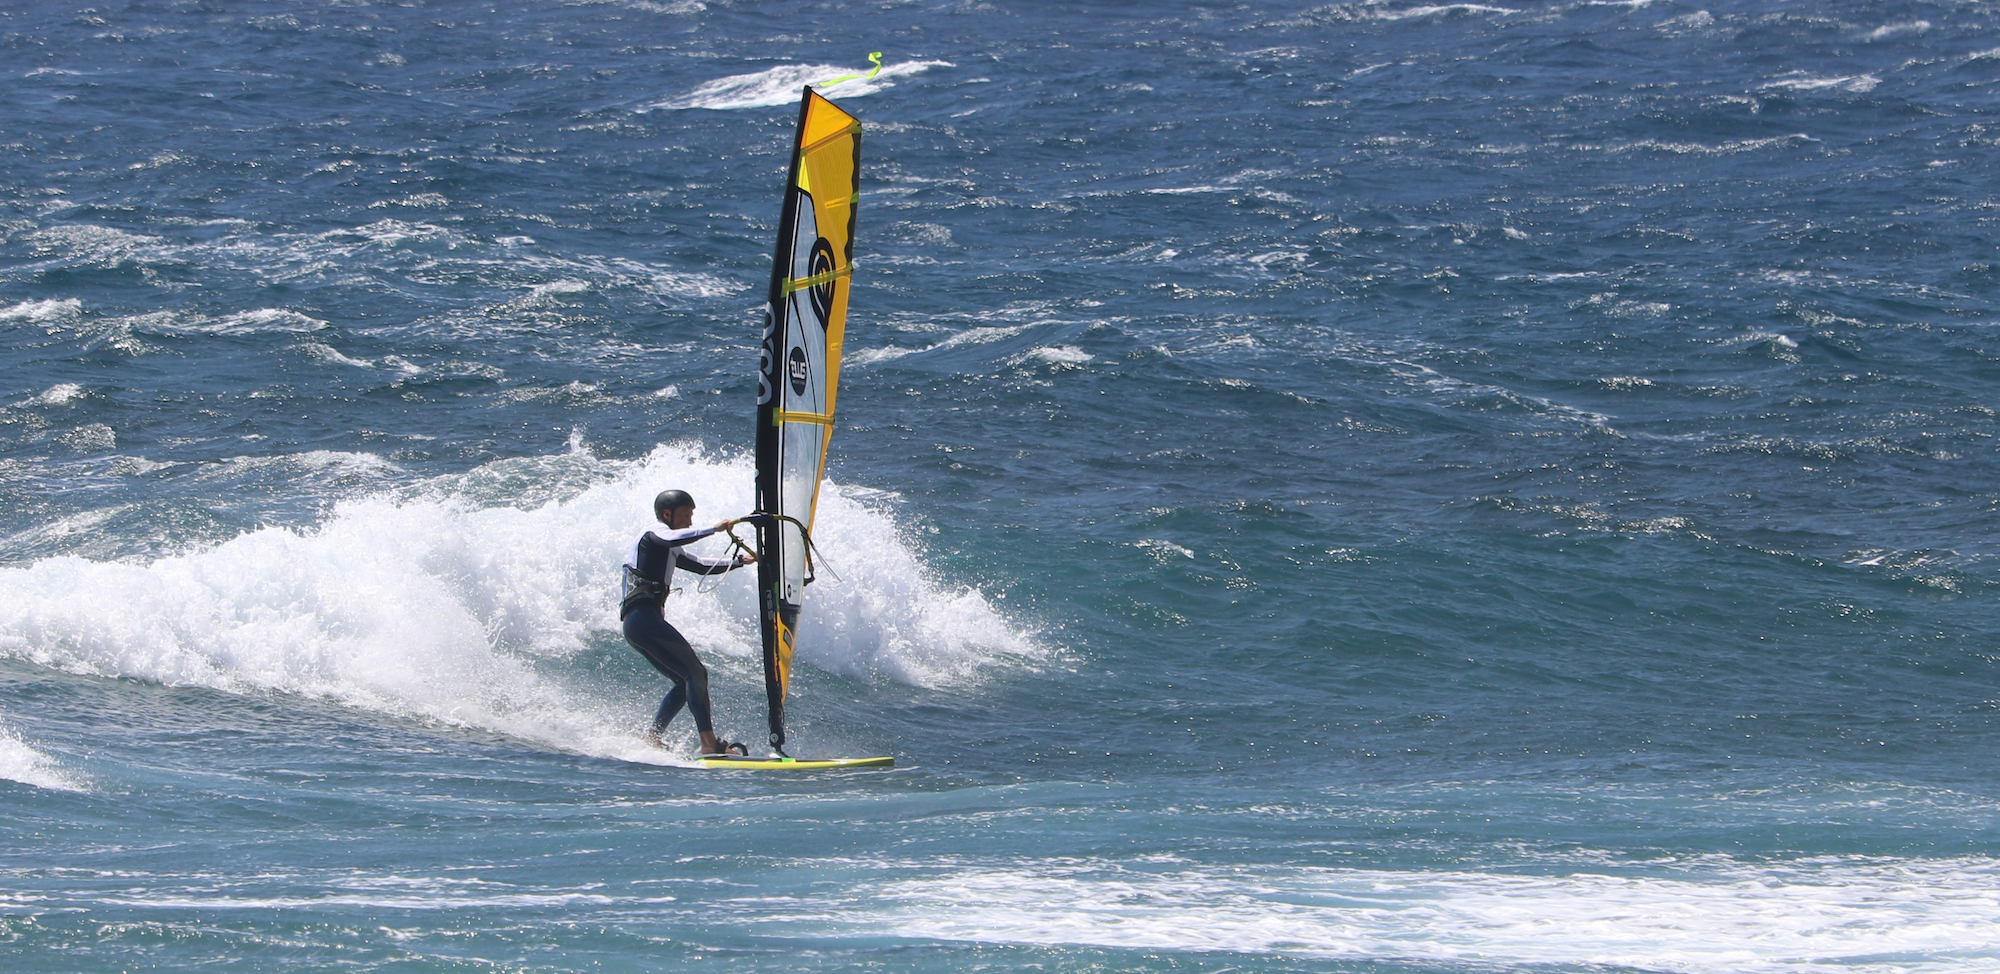 Windsurfing at El Medano in Tenerife –– the best feeling in the world...